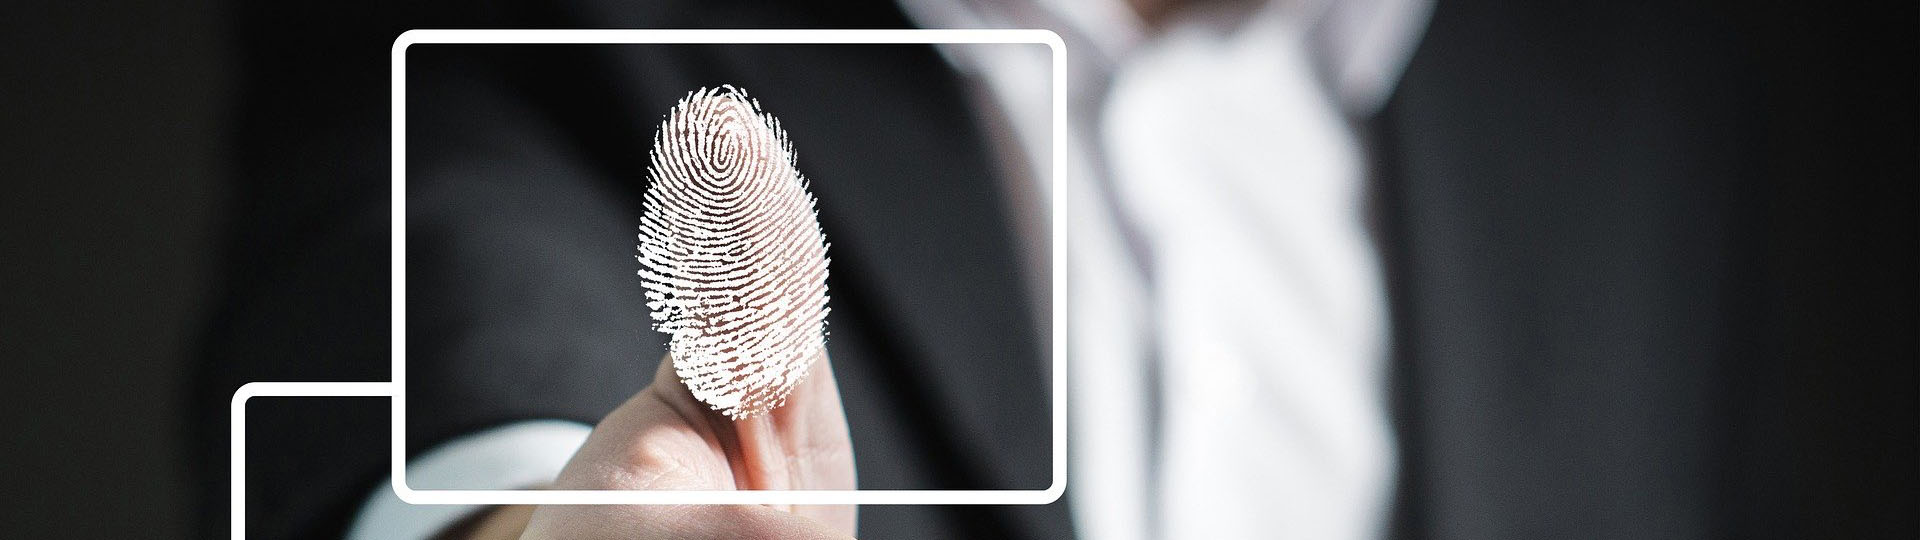 Stylized Image of Fingerprint Scan